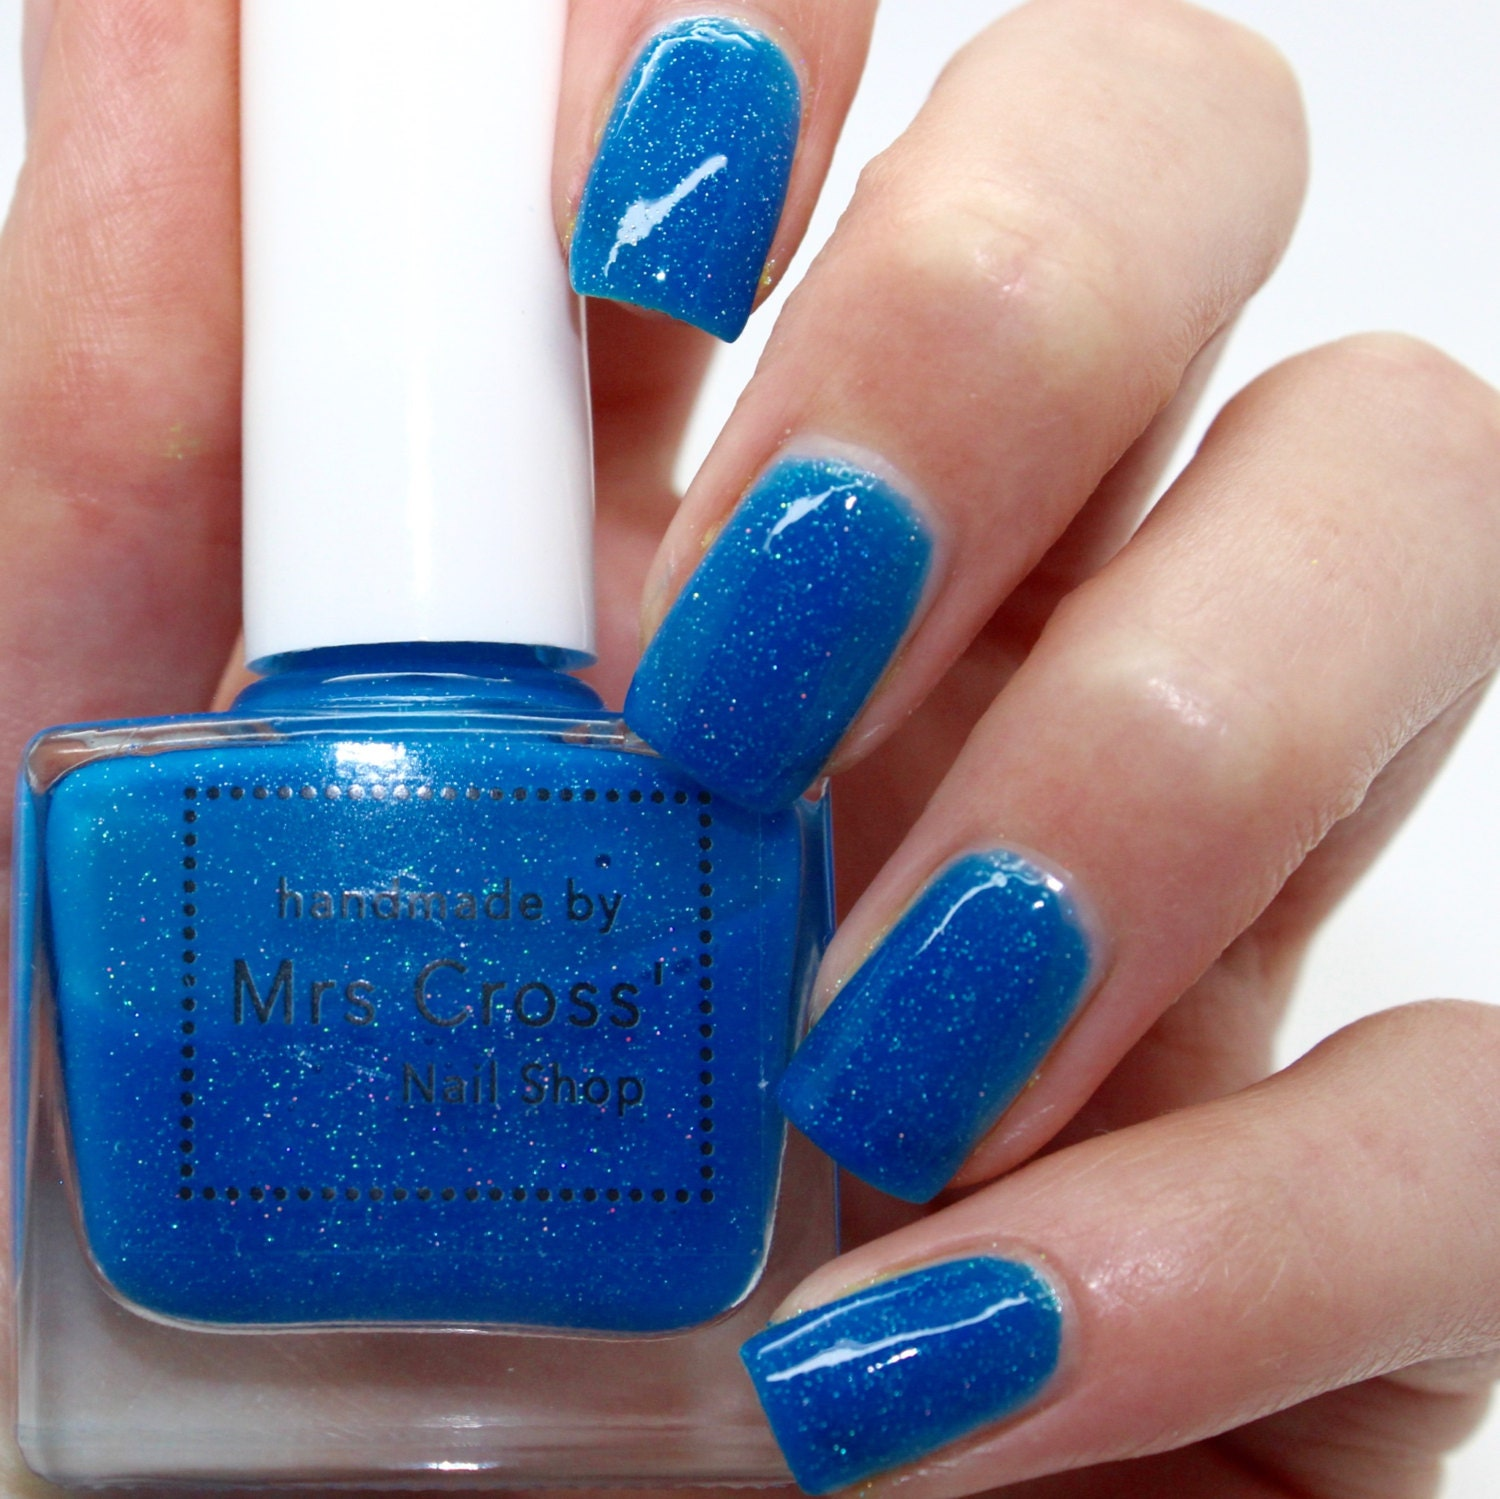 Neon Blue Nail Polish: Mullet 10ml Bright Blue Neon Nail Polish By MrsCrossNailShop